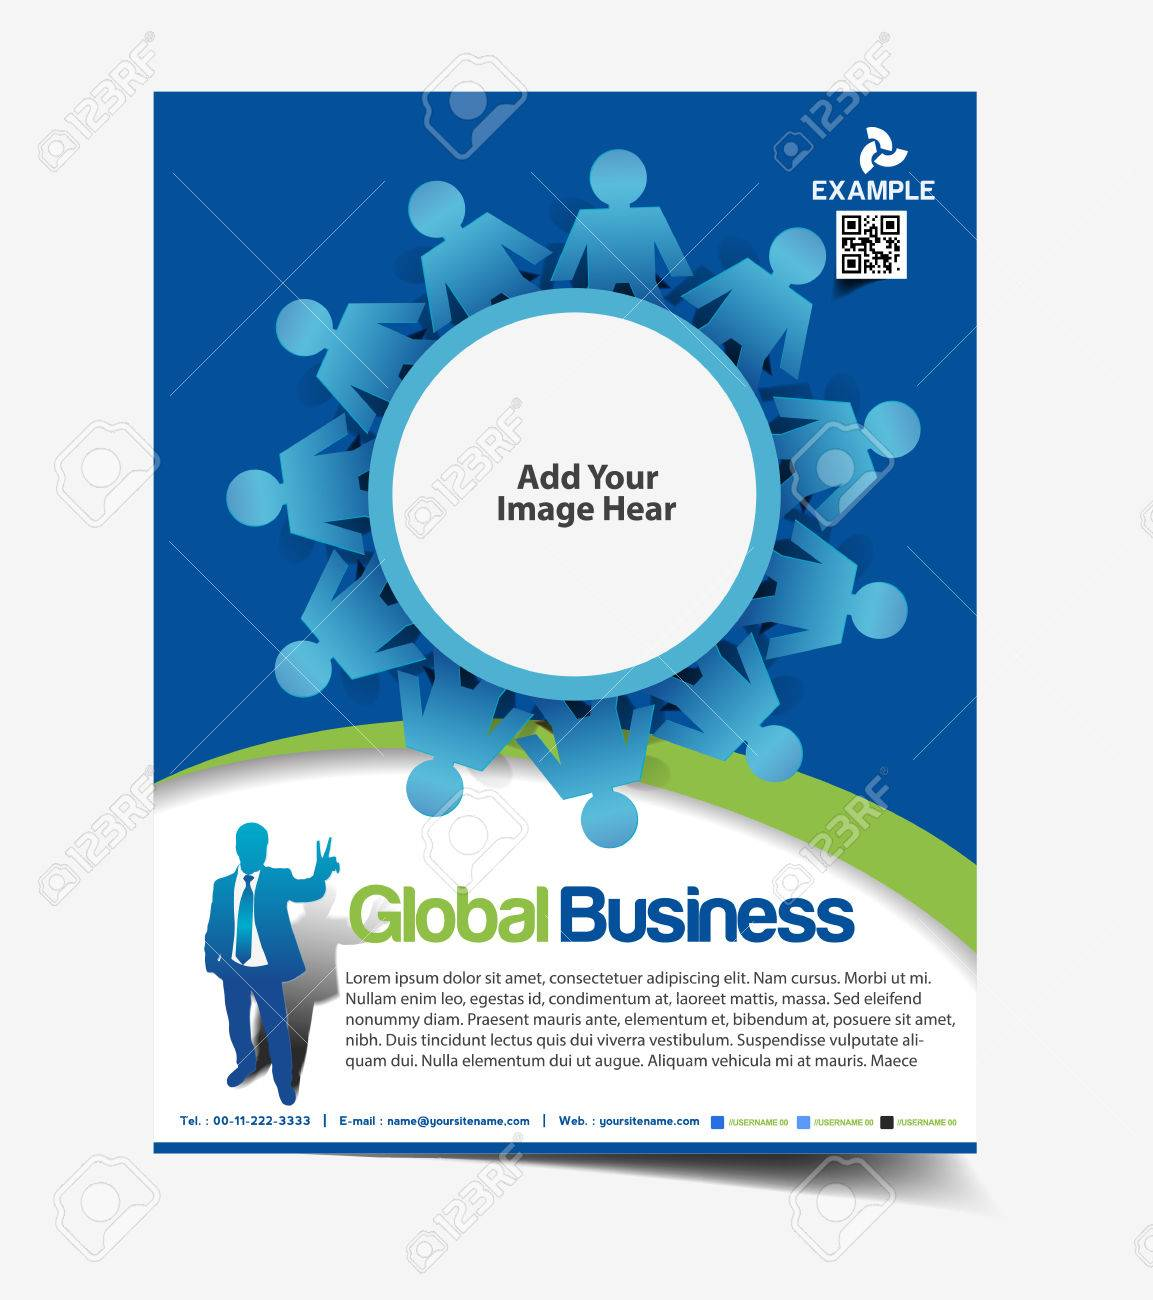 Global Business Flyer & Poster Template Design Stock Vector - 26530334